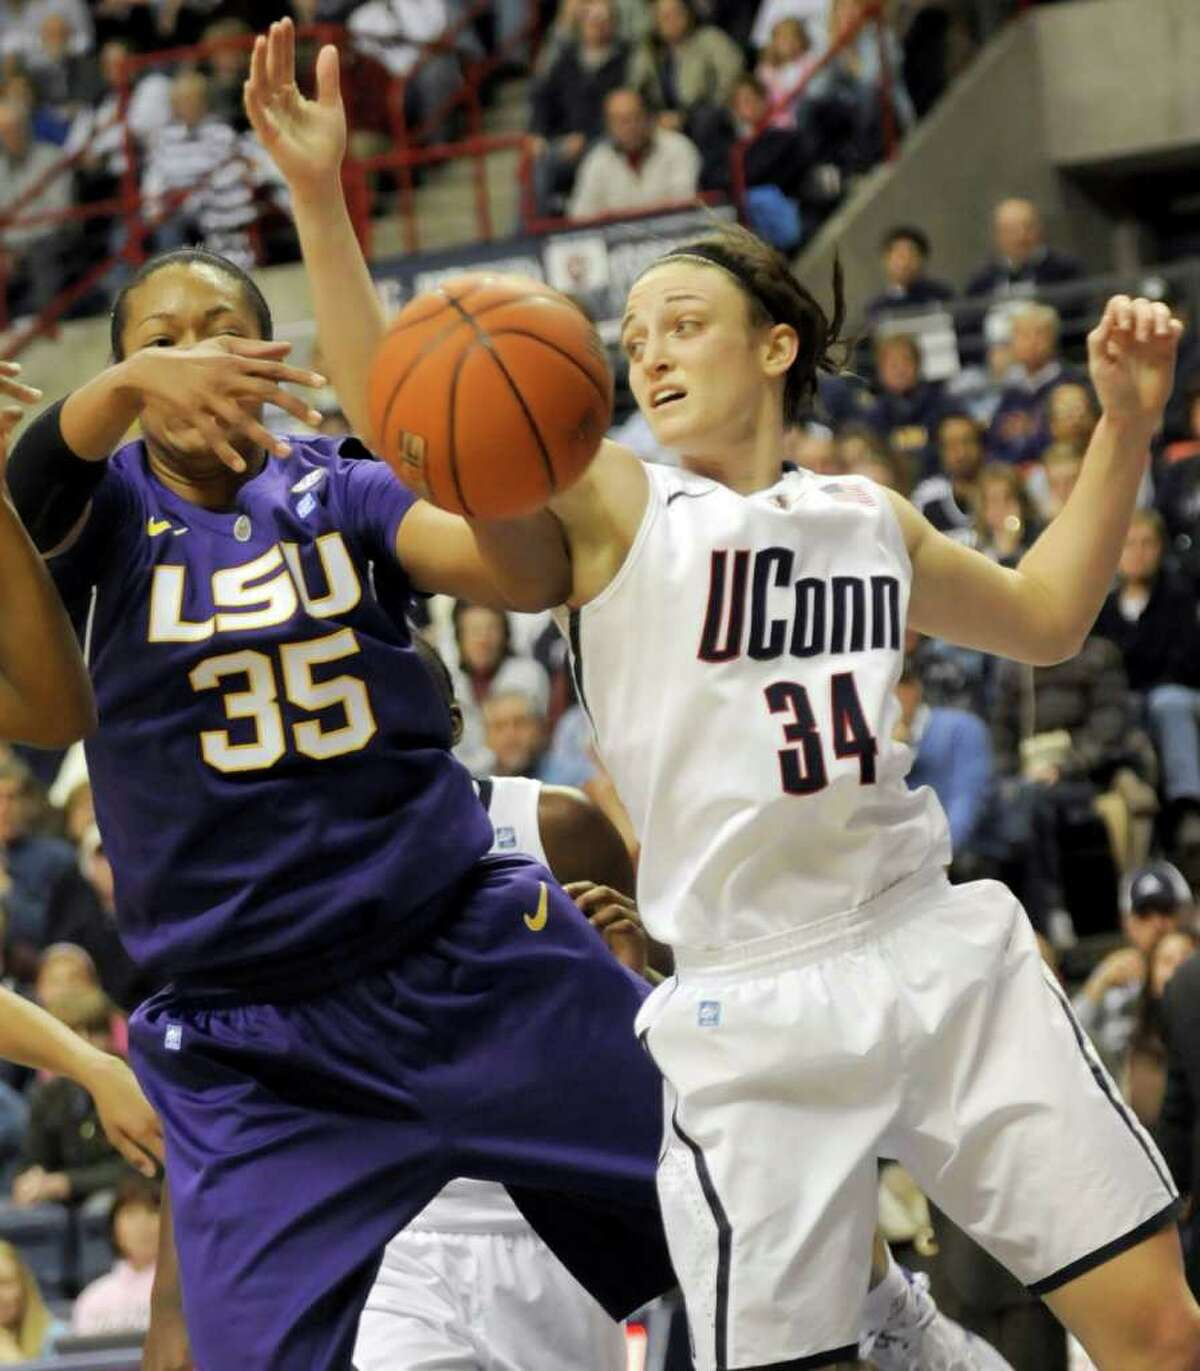 Taylor Turnbow, left, of LSU and Connecticut's Kelly Faris battle for a loose ball in the first half of their NCAA women's basketball game at Storrs, Conn., Sunday, Nov. 28, 2010. (AP Photo/Bob Child)